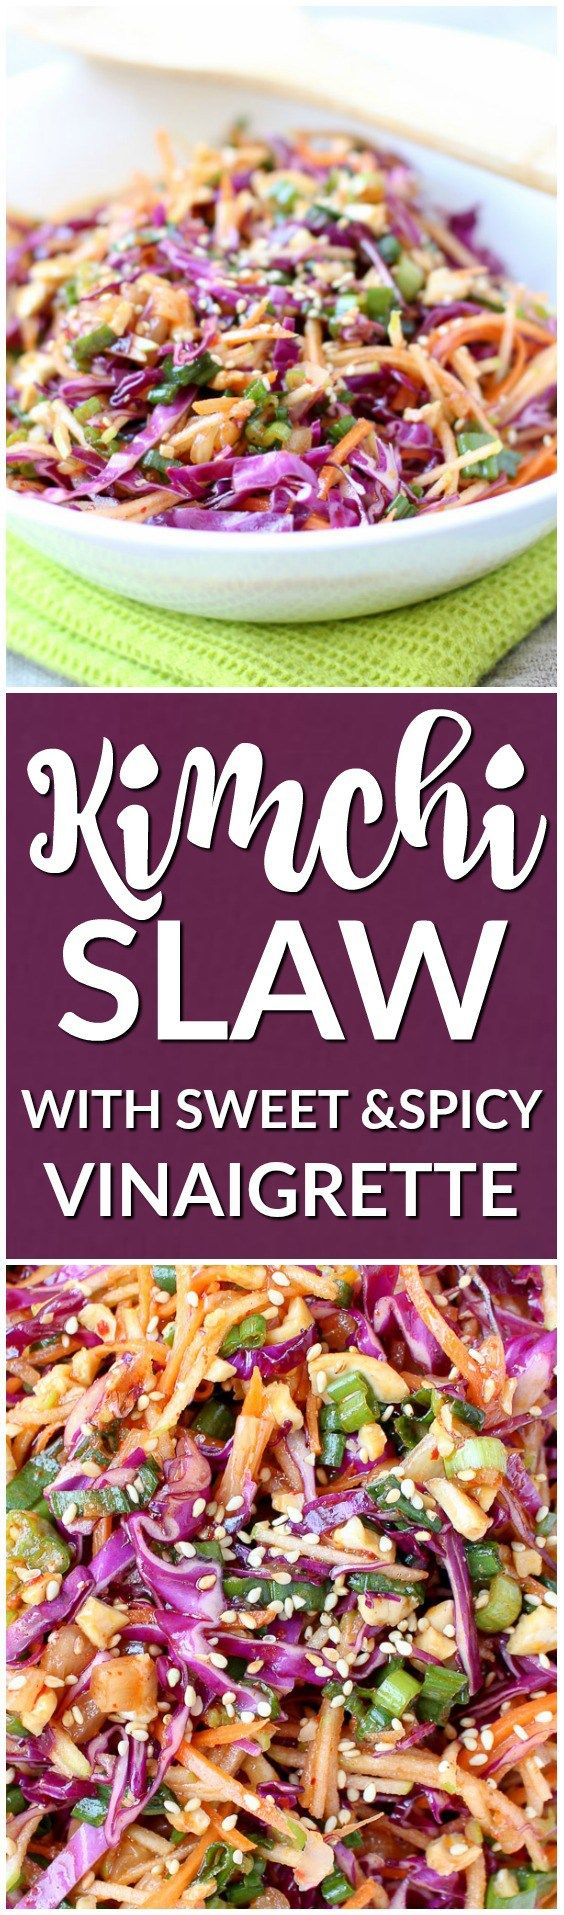 Kimchi Slaw is light, refreshing, sweet, spicy, and crunchy. It's everything a refreshing side dish should be! |www.kimchichick.com